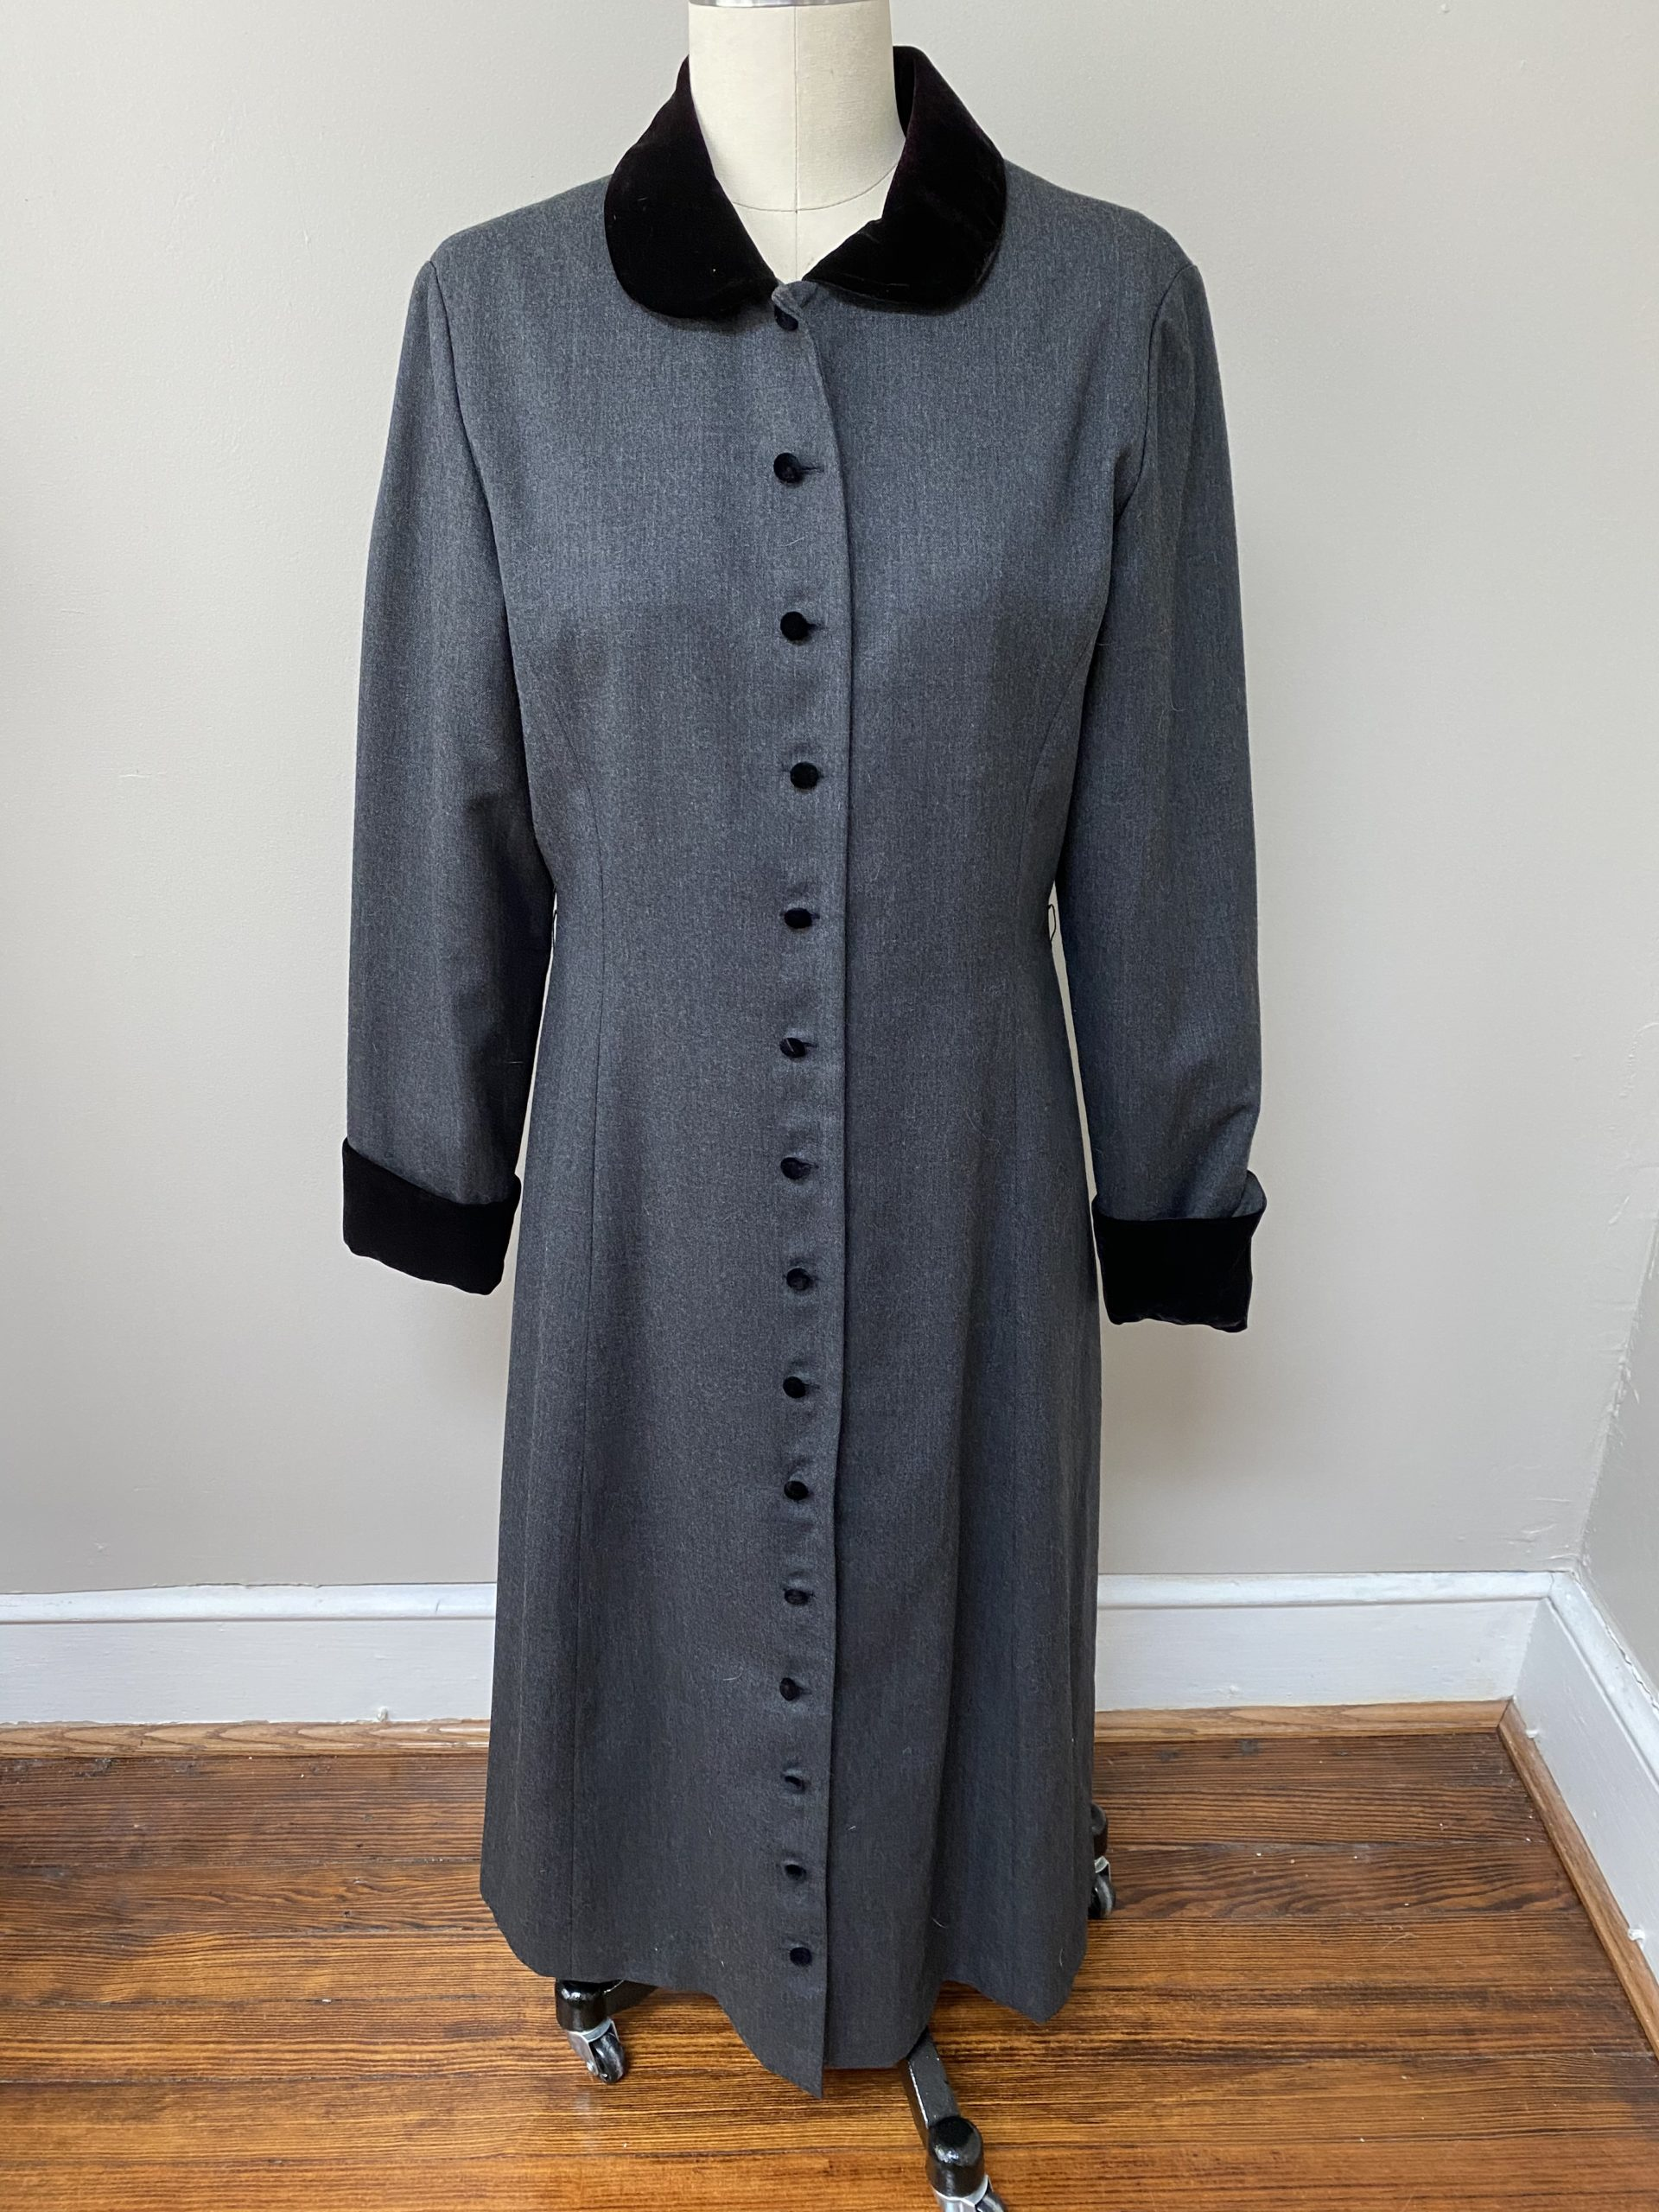 Wednesday Addams / Mary Poppins / Victorian coat